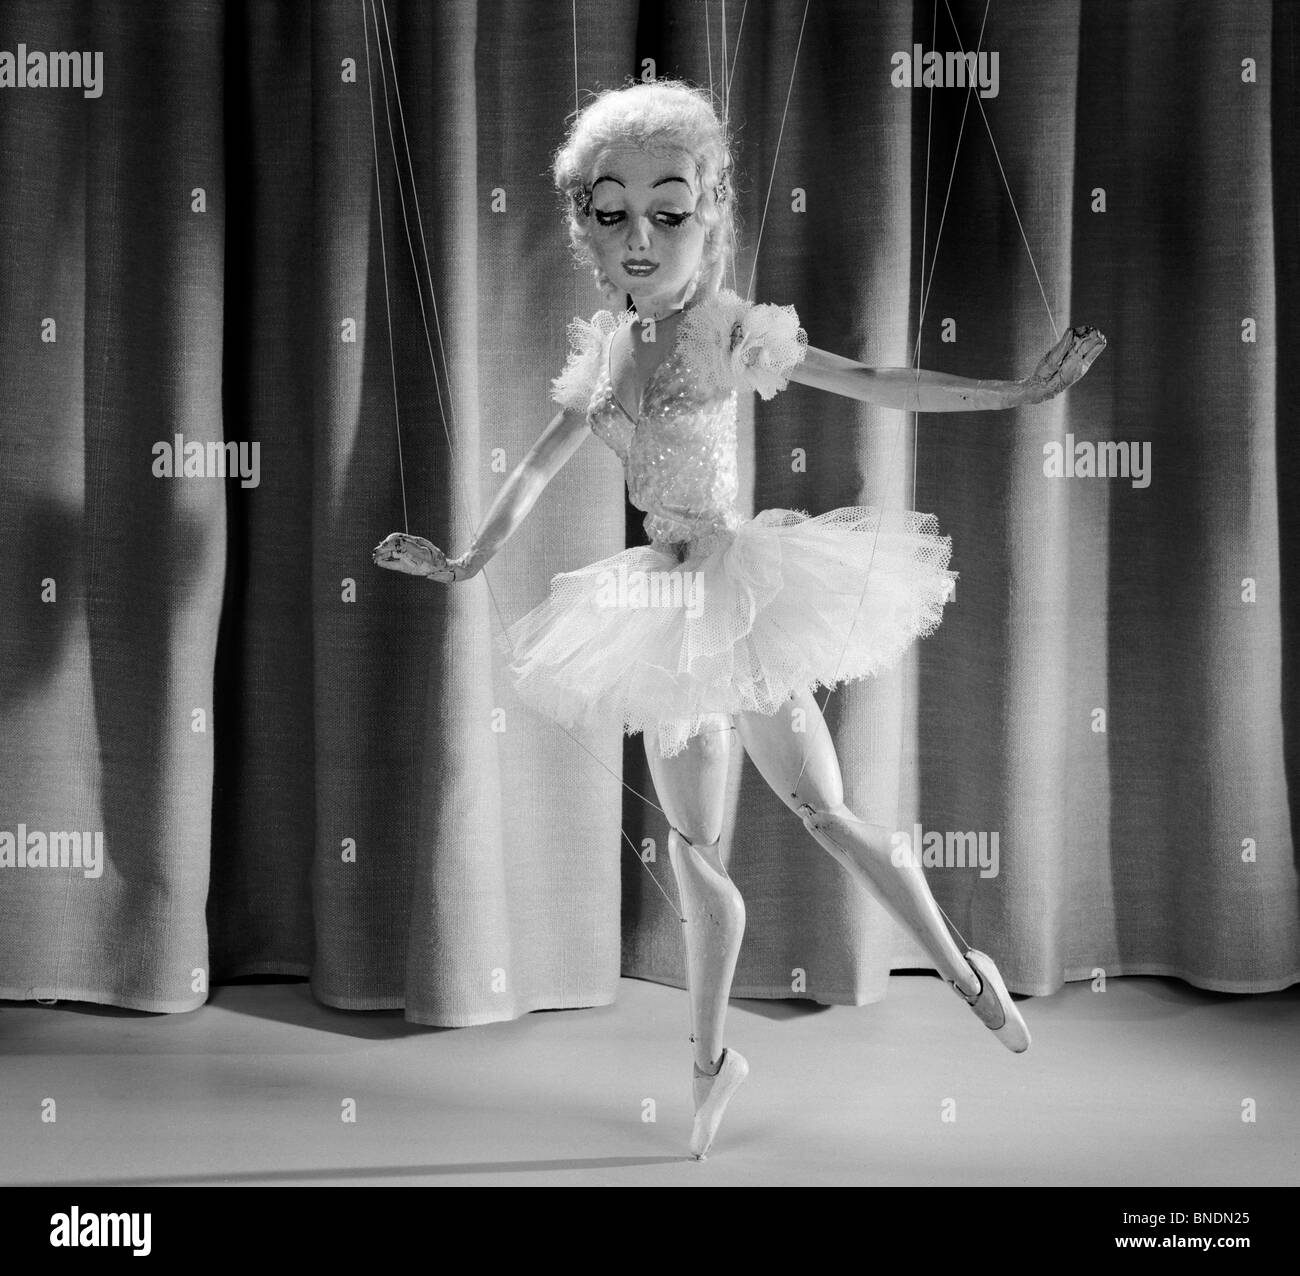 female marionette dancing stock photo 30420045 alamy